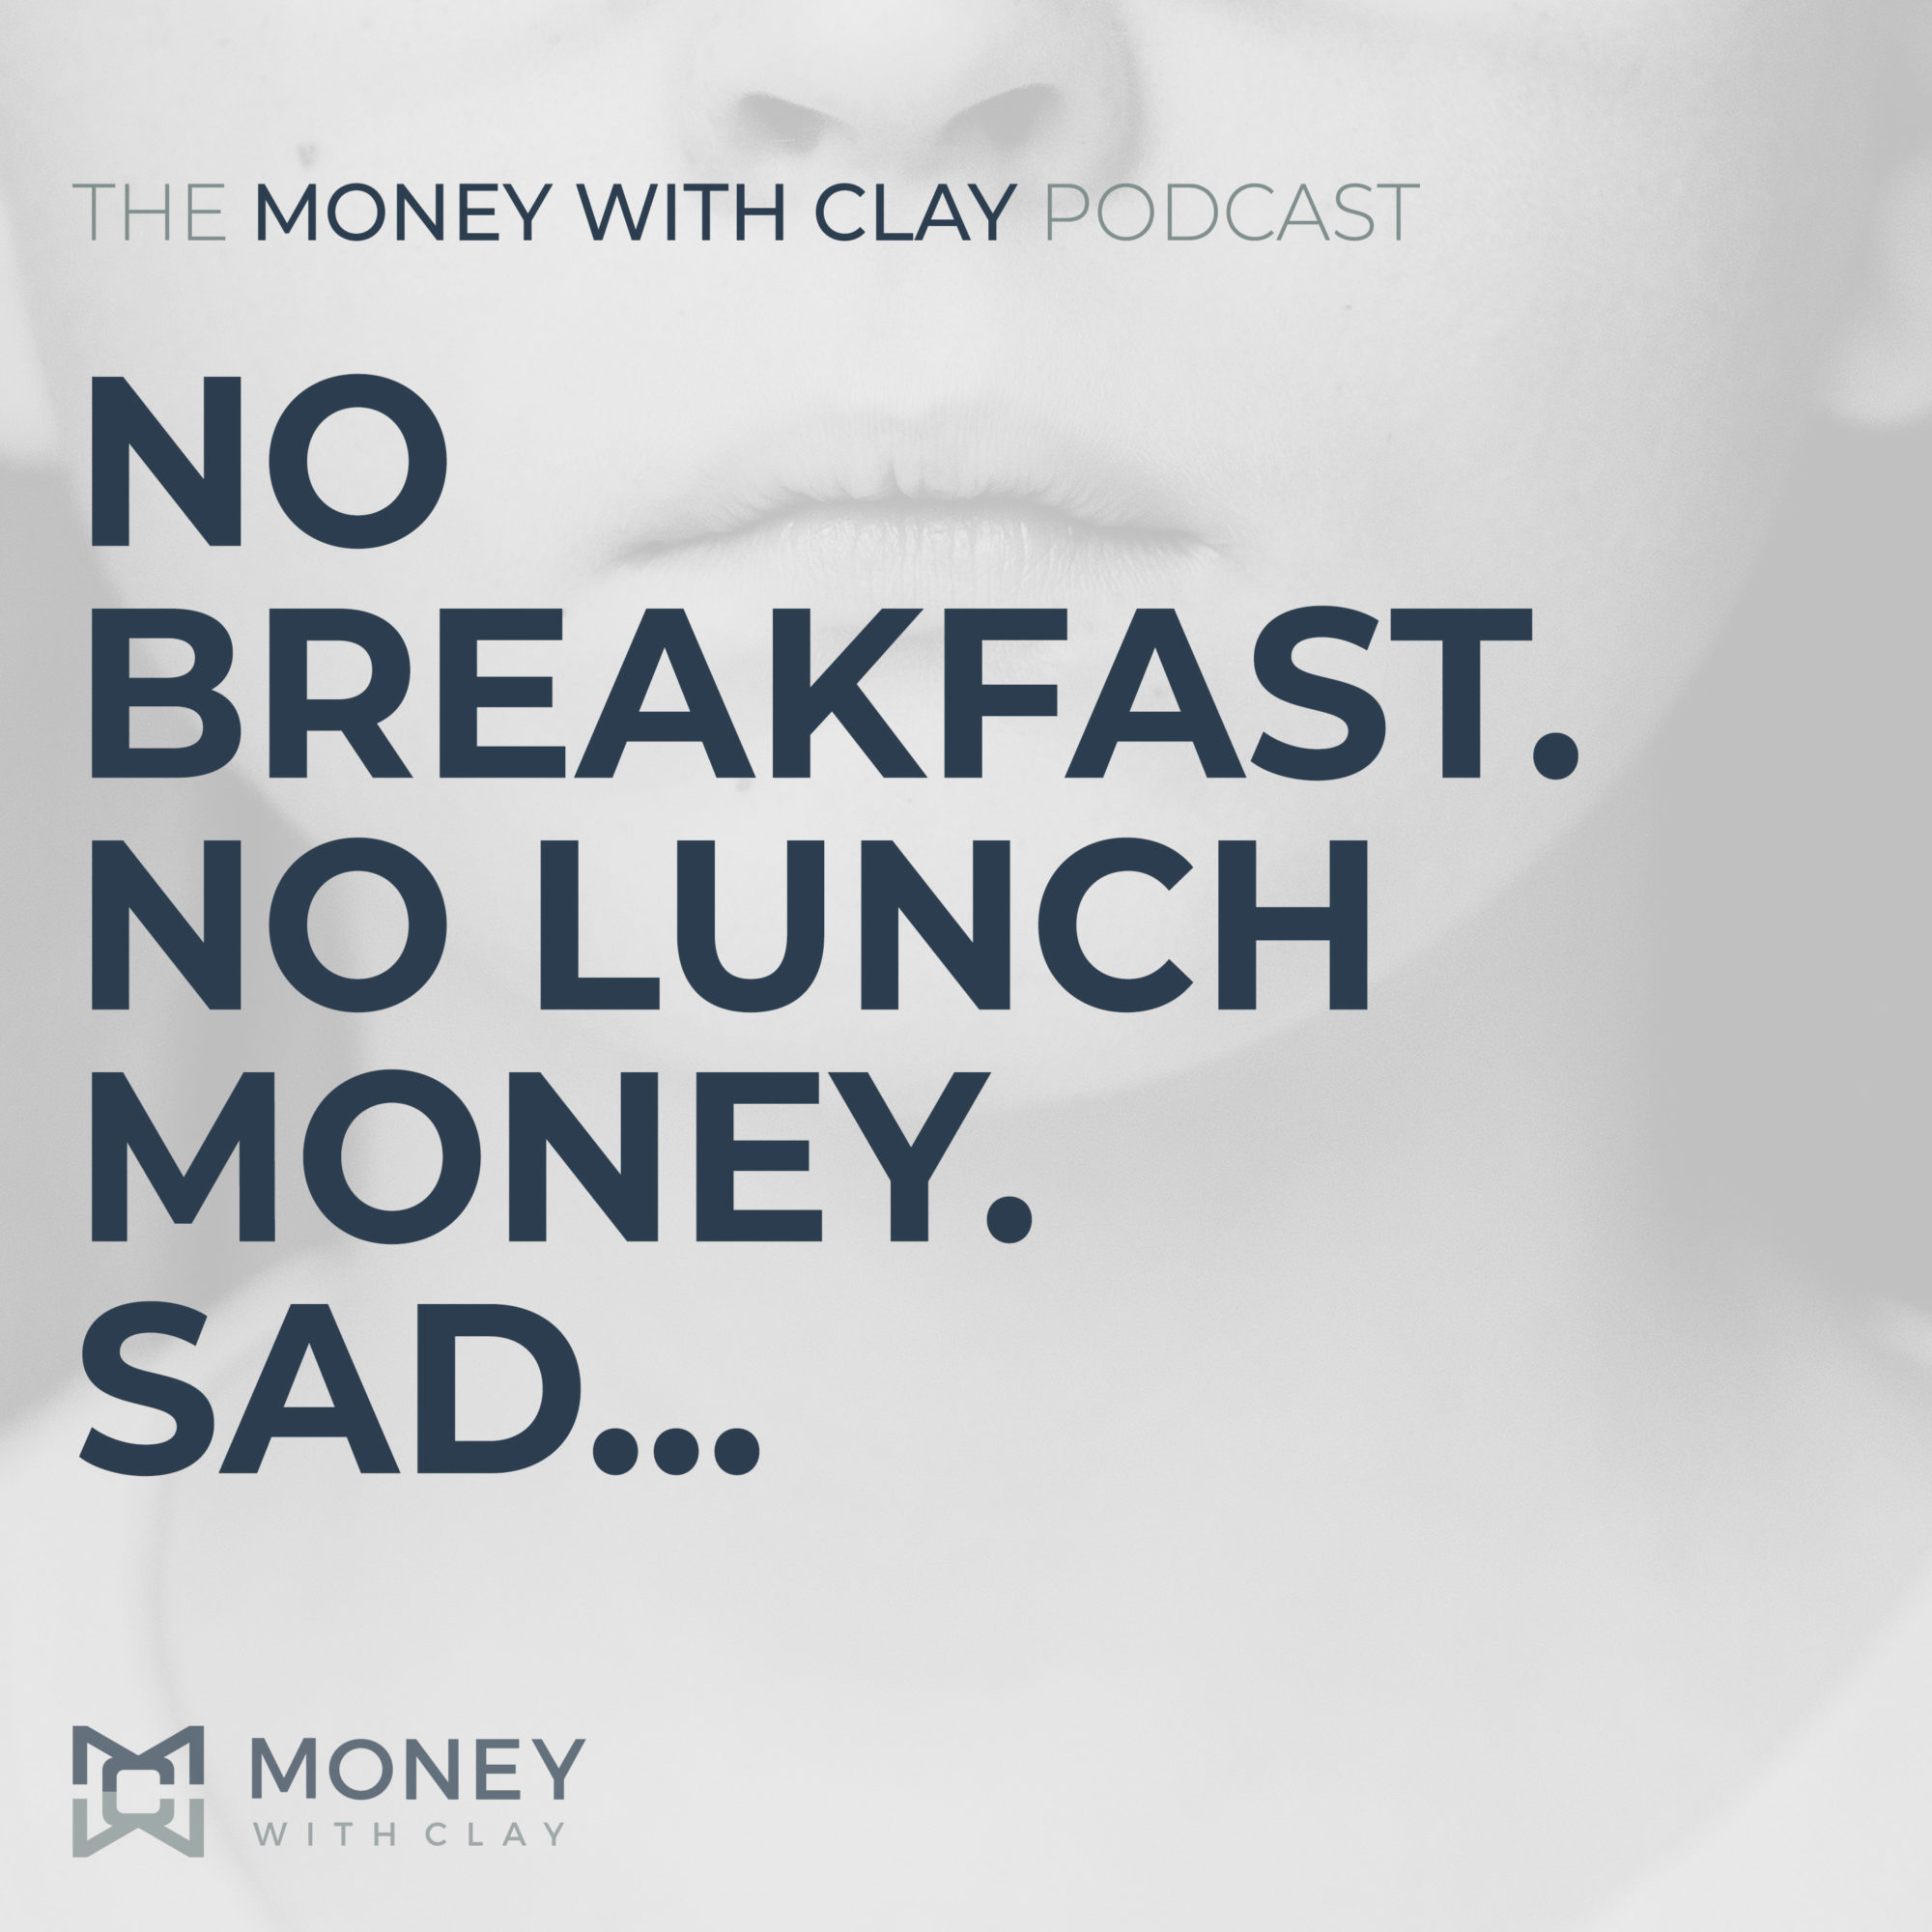 #063 - No Breakfast. No Lunch Money. Sad...